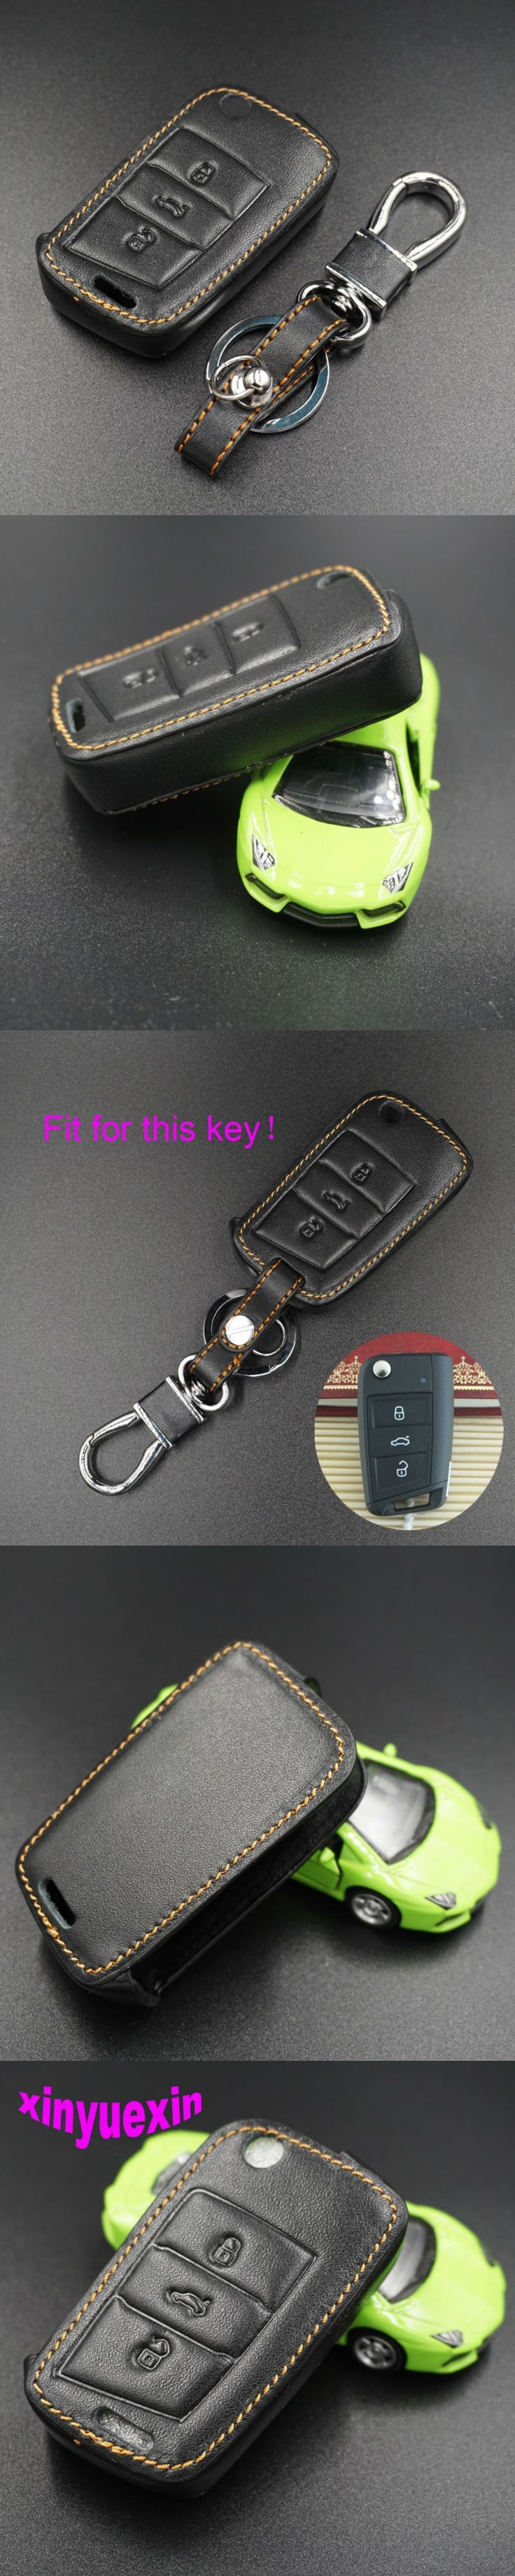 Xinyuexin Leather Car Key Cover Case For VW Golf 7 Leon GTI MK7 Skoda Octavia A7 Seat Ibiza Remote Car Key Jacket With Keychain